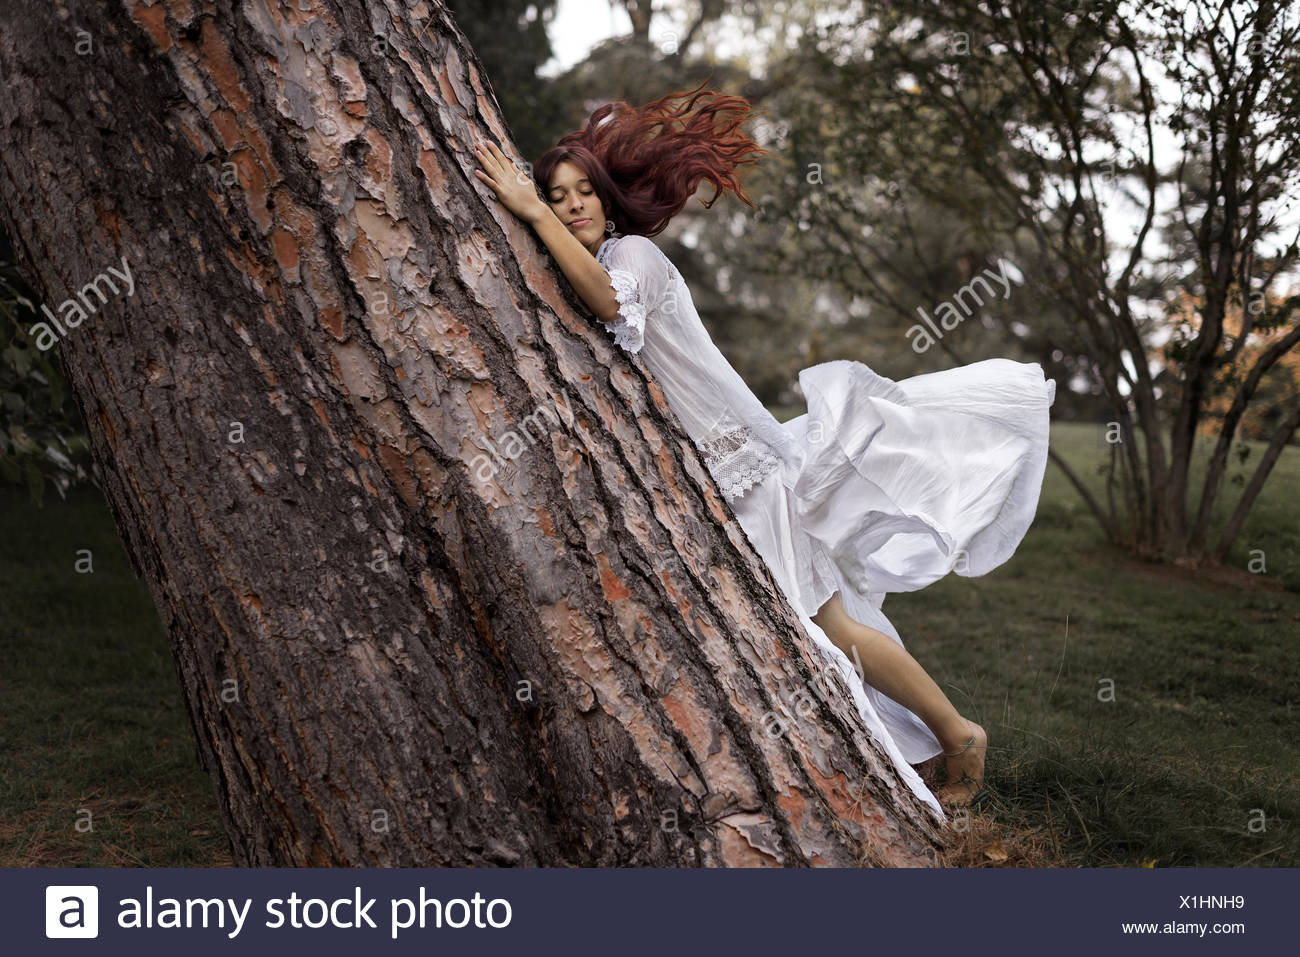 Young woman embracing tree Photo Stock